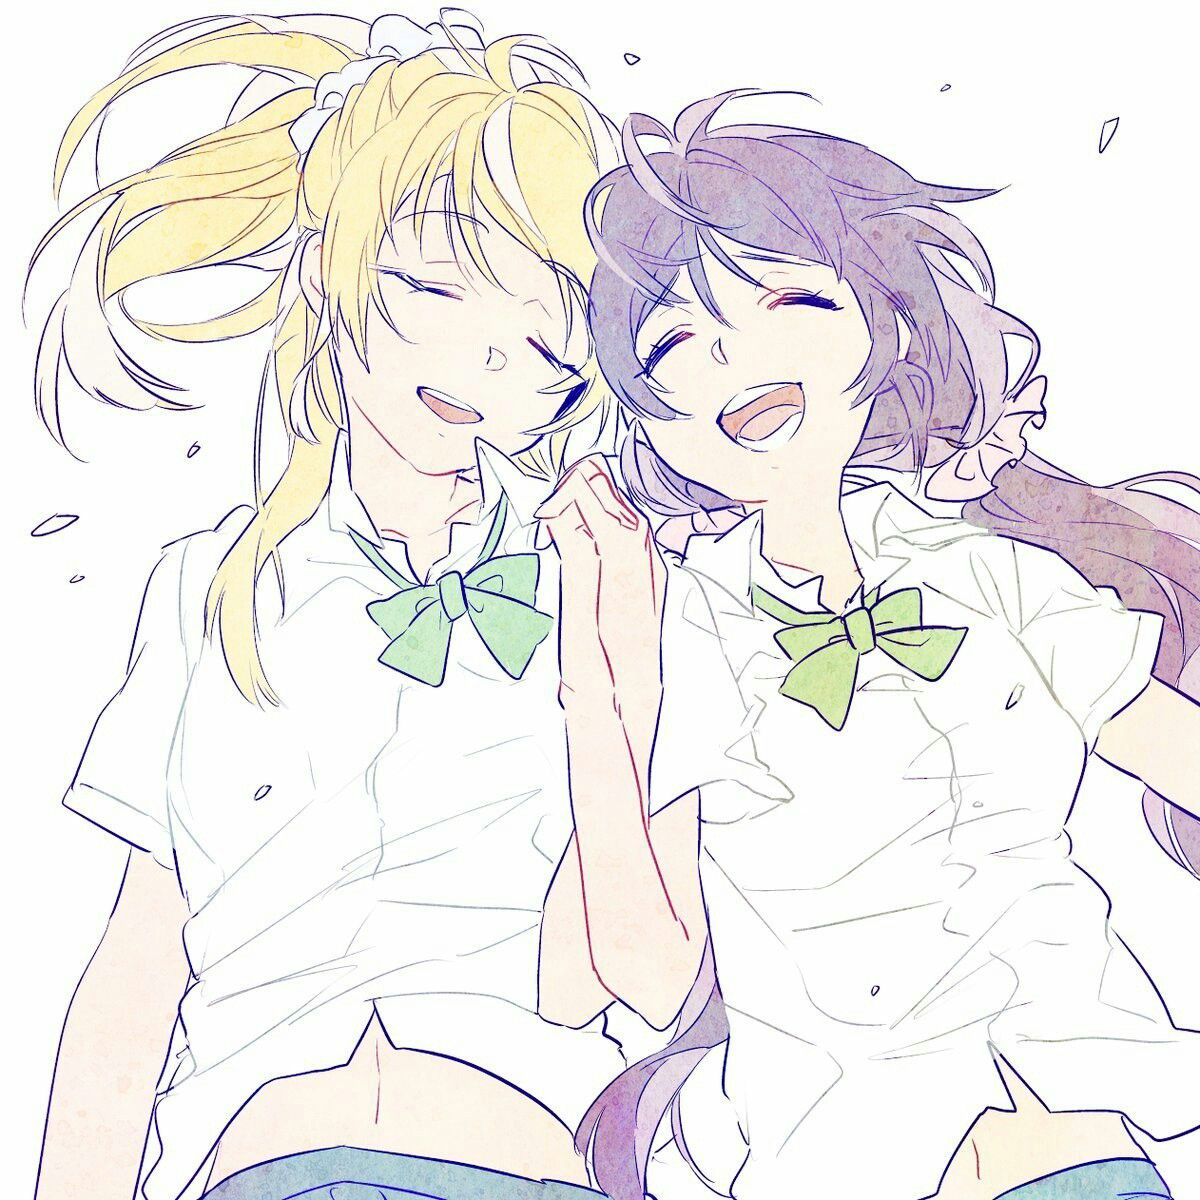 Pin by Катюша on Love Live!!!!! (With images) Girls in